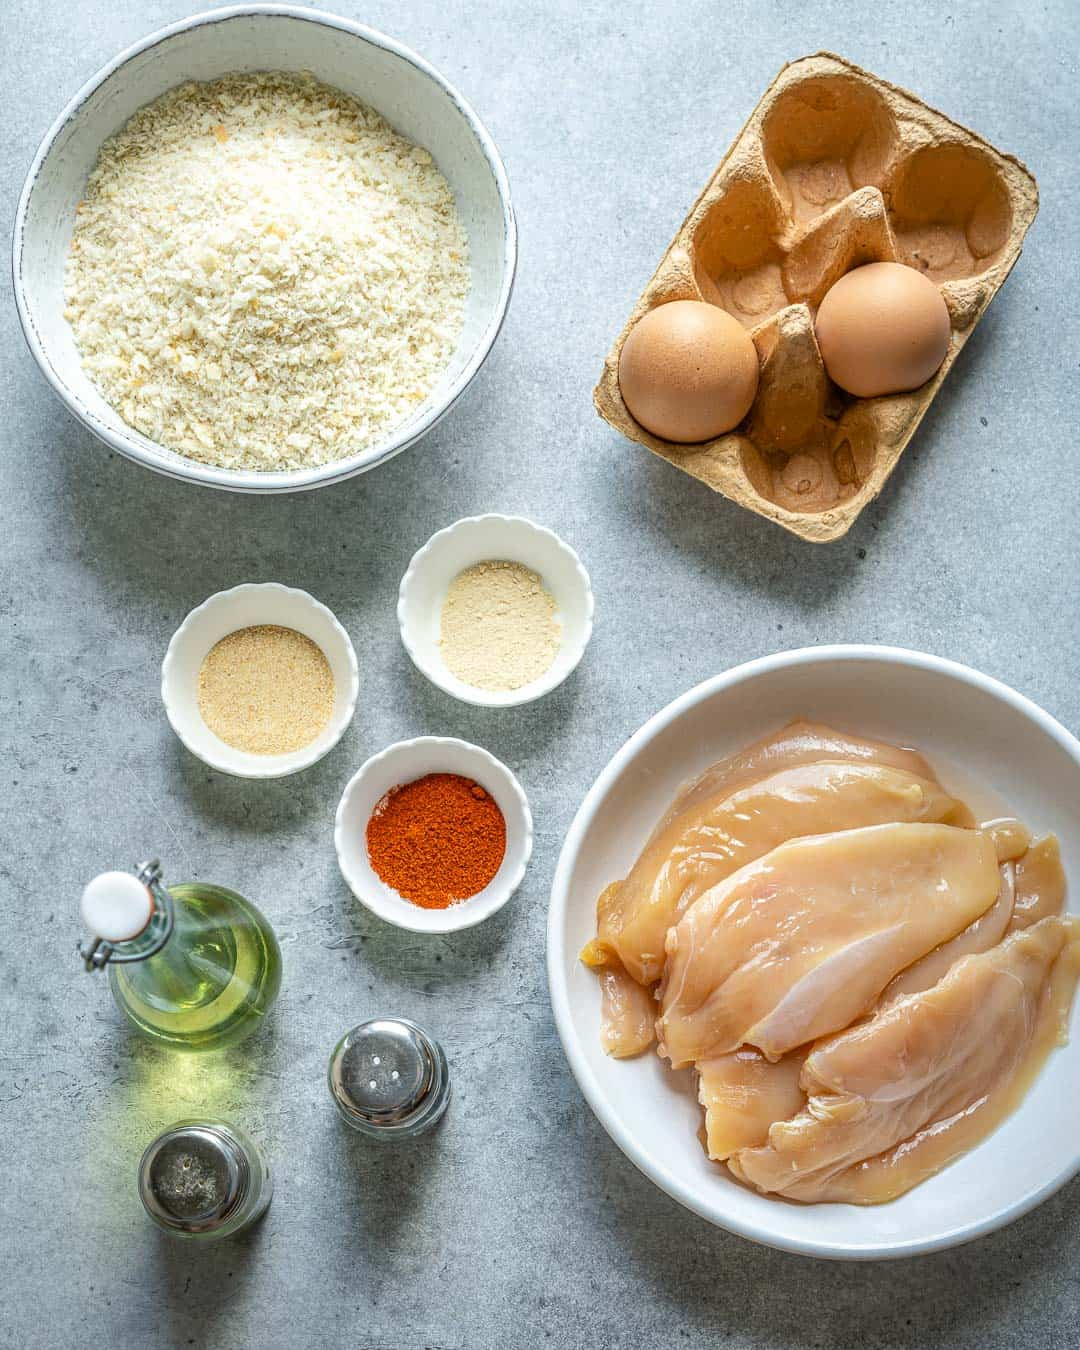 Ingredients for chicken nuggets on gray counter.